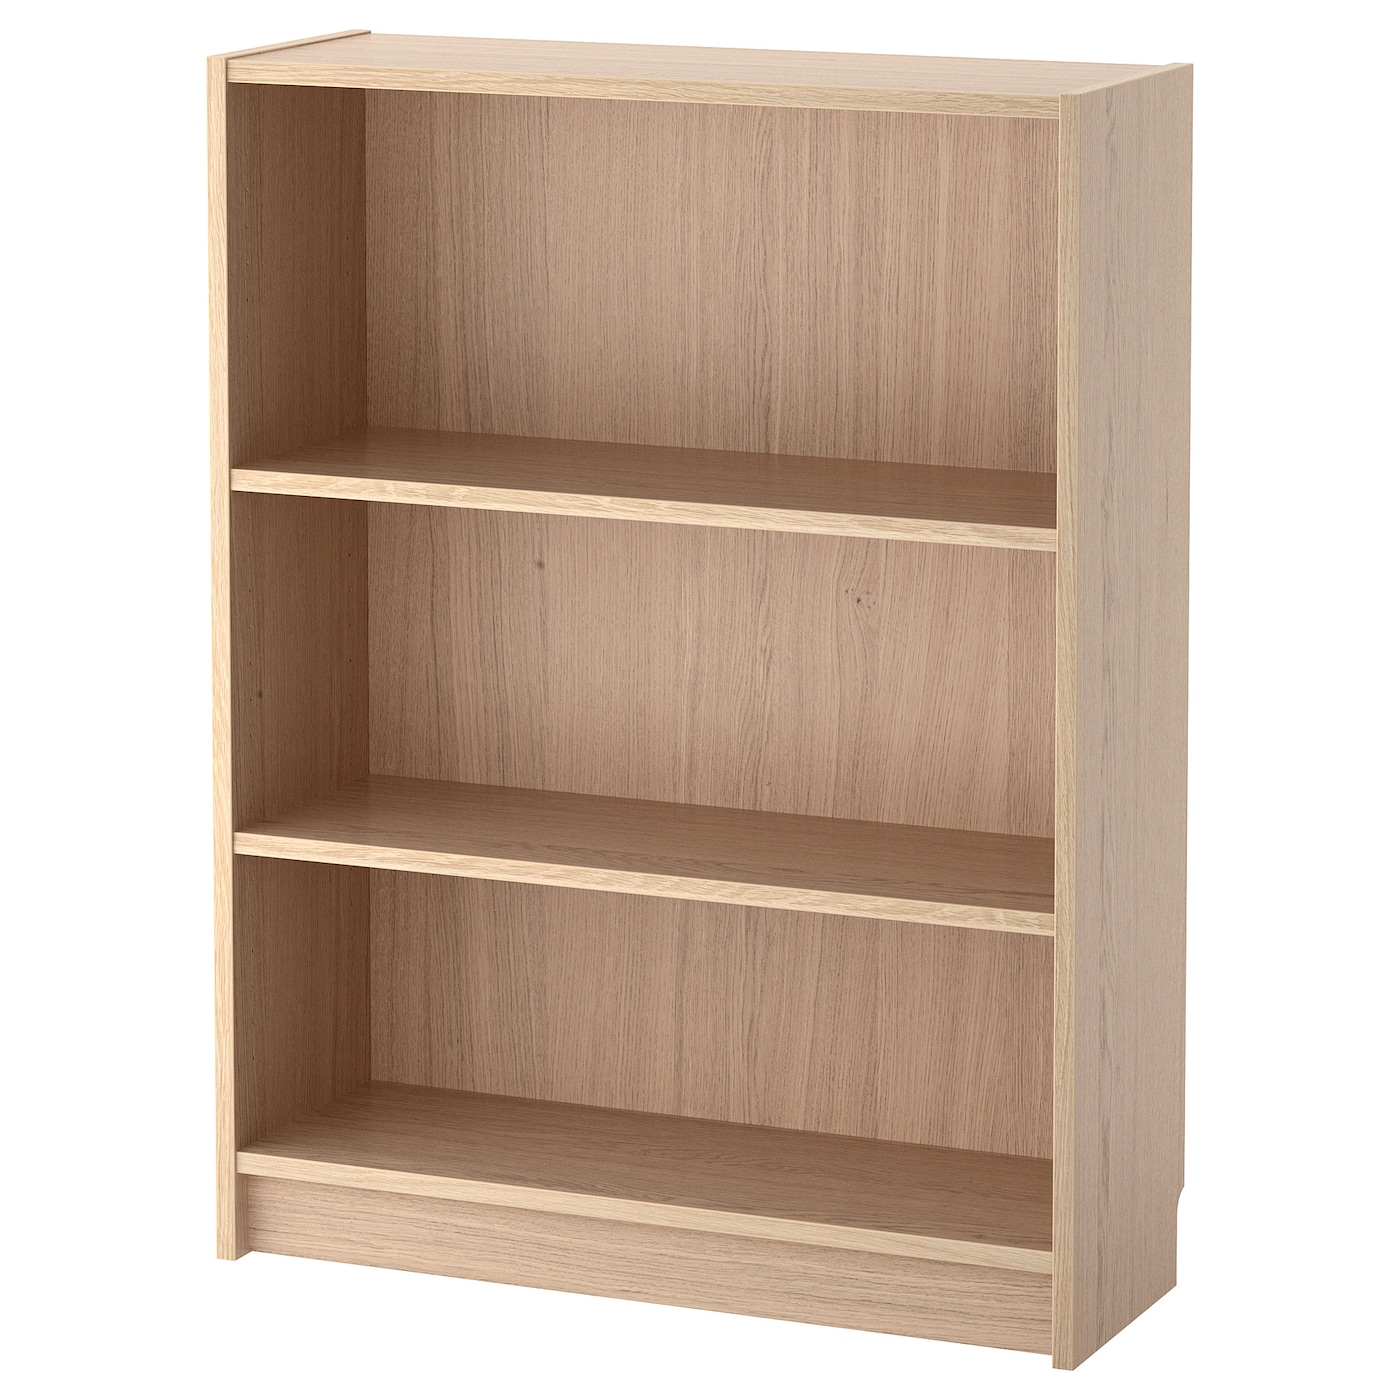 IKEA BILLY Bookcase Adjustable Shelves Adapt Space Between According To Your Needs